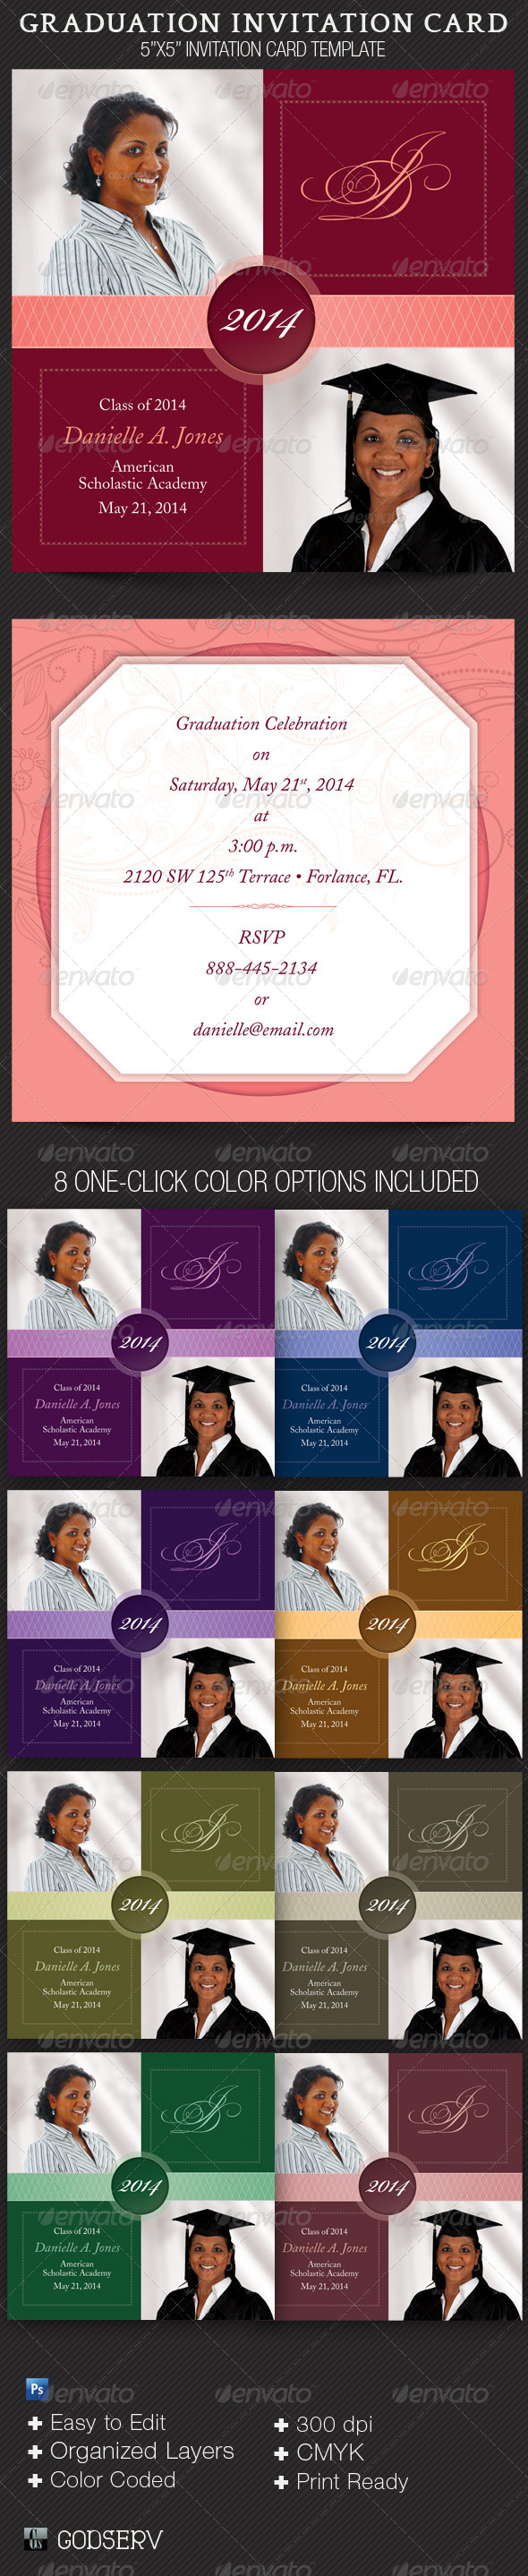 Graduation Invitation Card Template - Invitations Cards & Invites